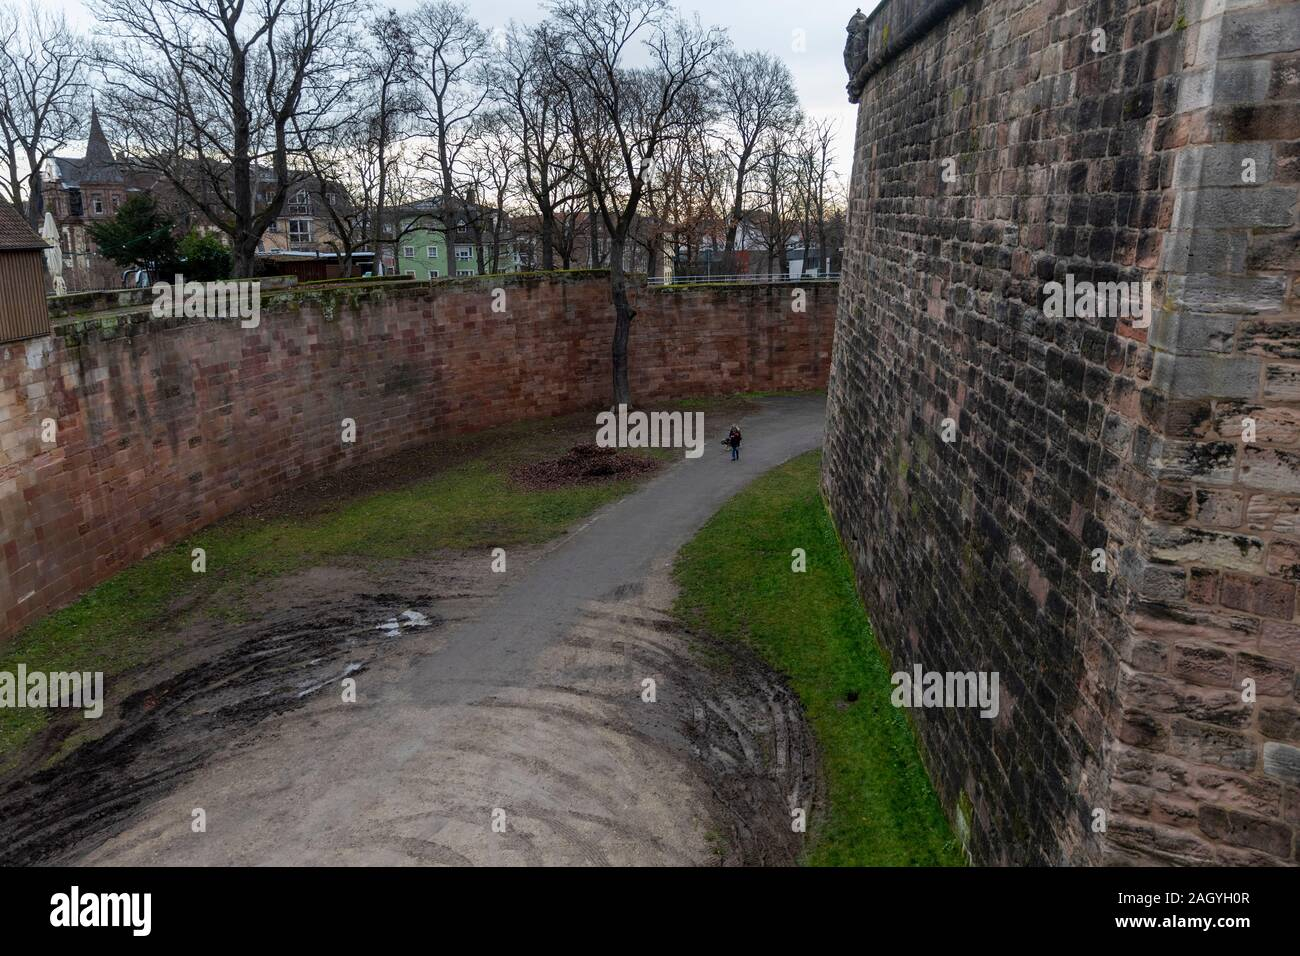 Nuremberg historical castle is very well preserved. Person walking the dog gives comparison to the amazing height of defensive wall. Stock Photo